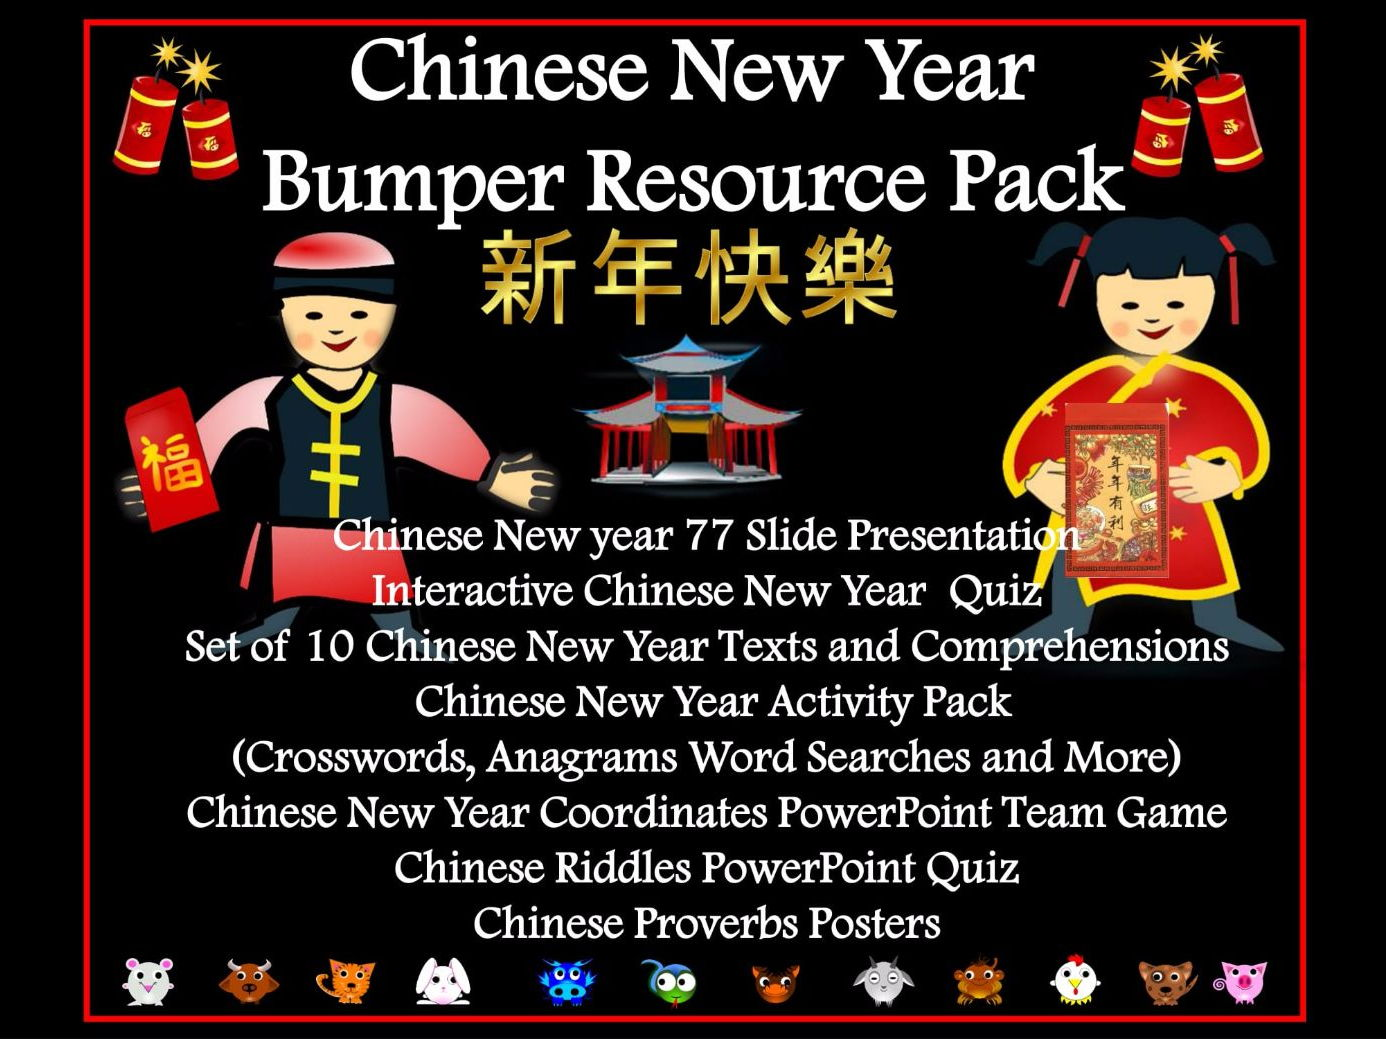 Chinese New Year Bumper Pack